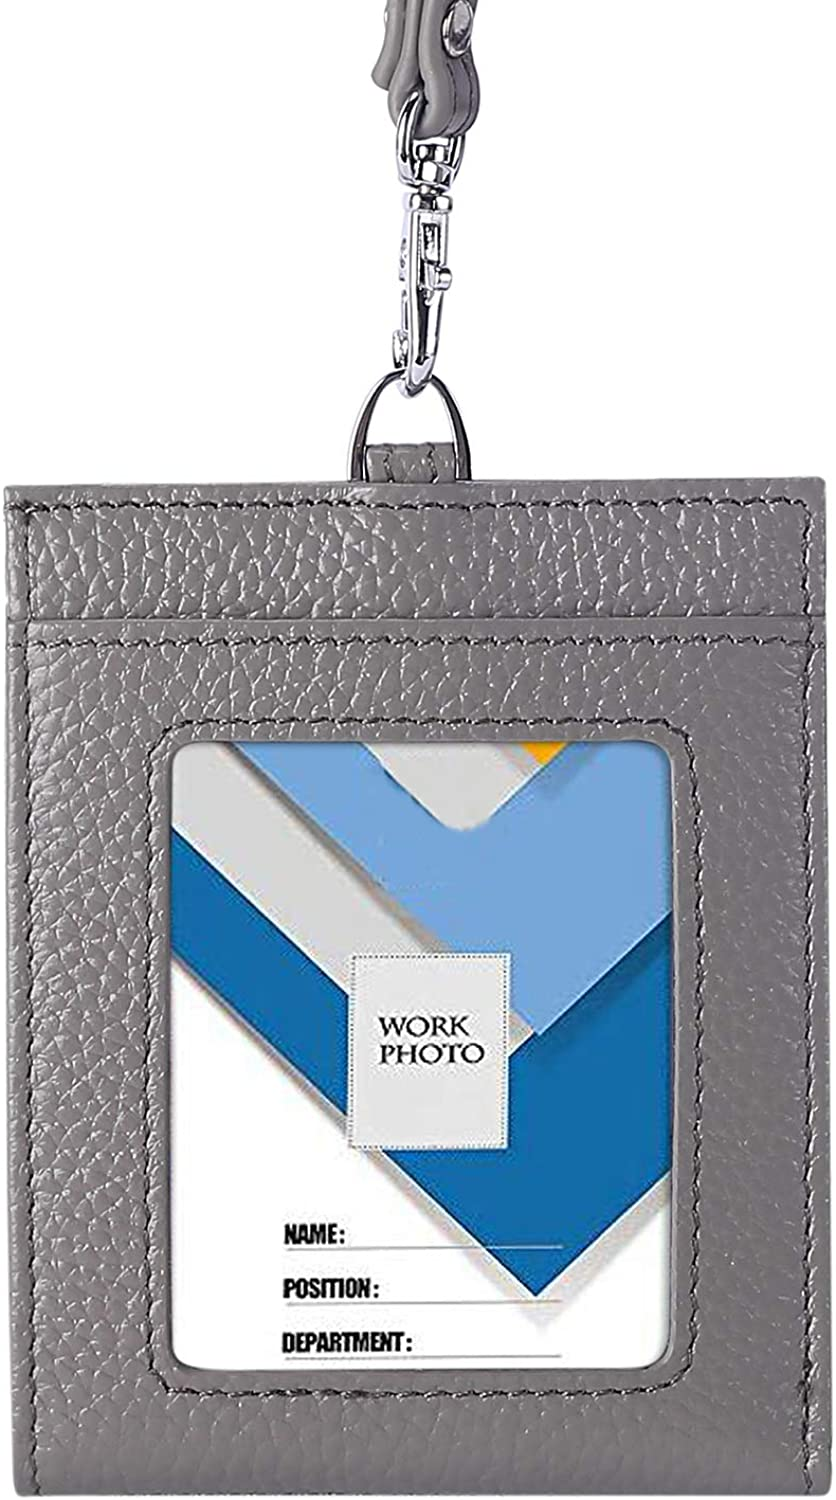 Yafeige Leather RFID Wallet, ID Badge Card Holder Wallet with 6 Cards Slot, 1 Cash Pocket and Neck Lanyard/Strap